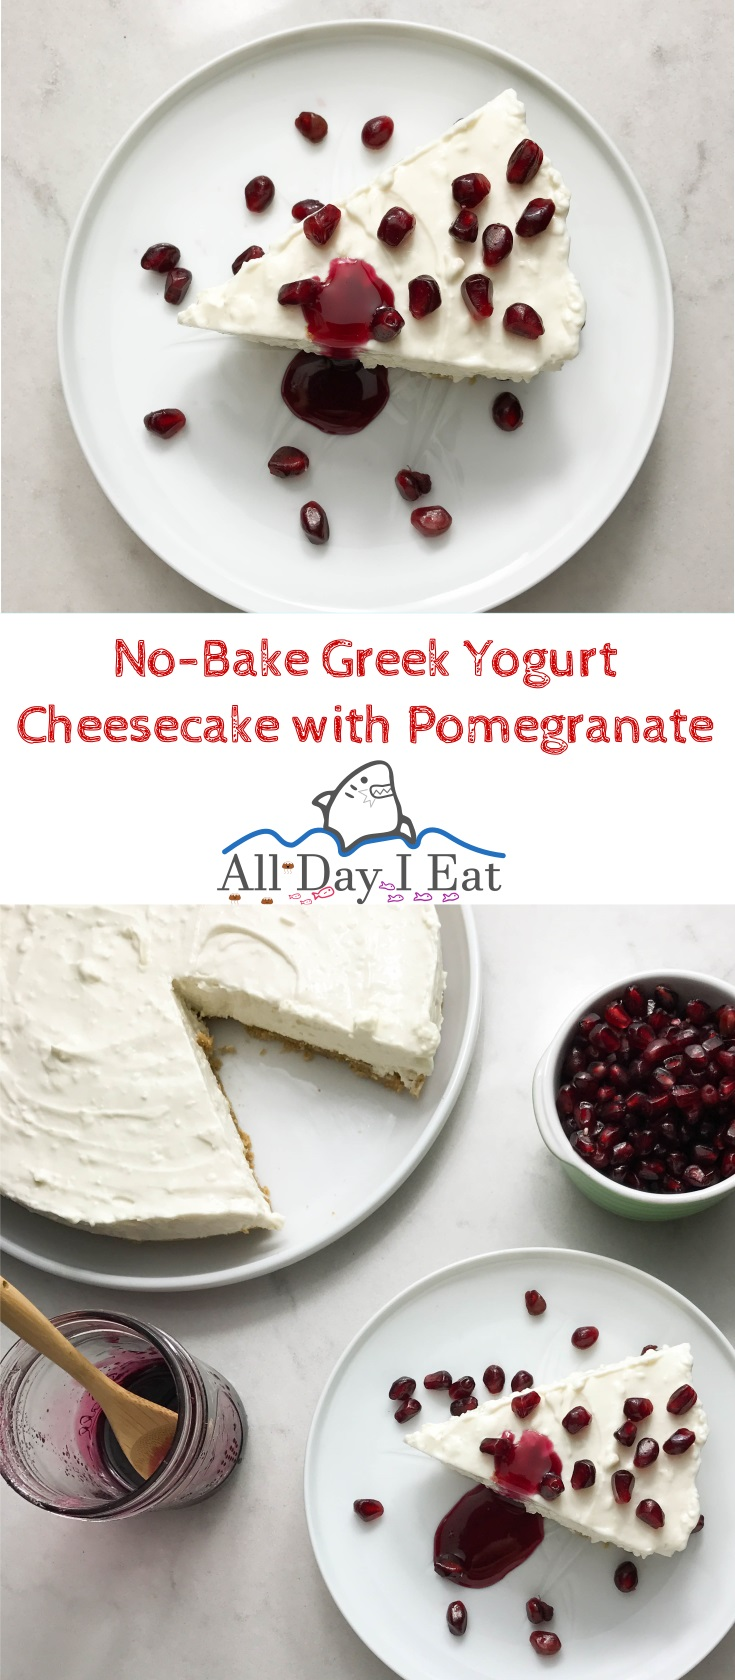 No-Bake Greek Yogurt Cheesecake with Pomegranate so good you'll want to eat it all up yourself!